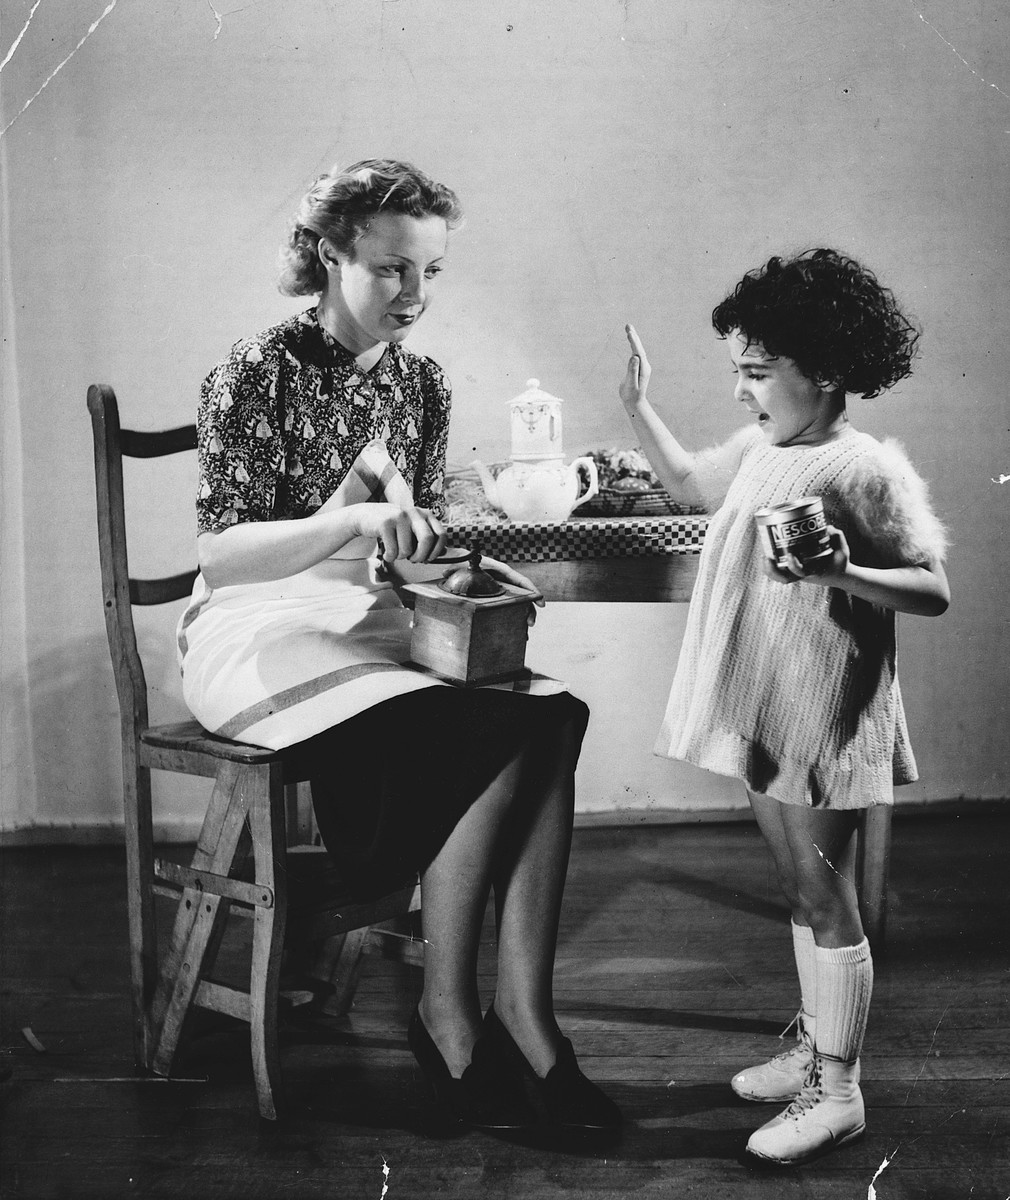 Advertising photograph of a woman holding a coffee grinder and a child holding a can of Nescafe.  The child is Regine Gartenlaub.